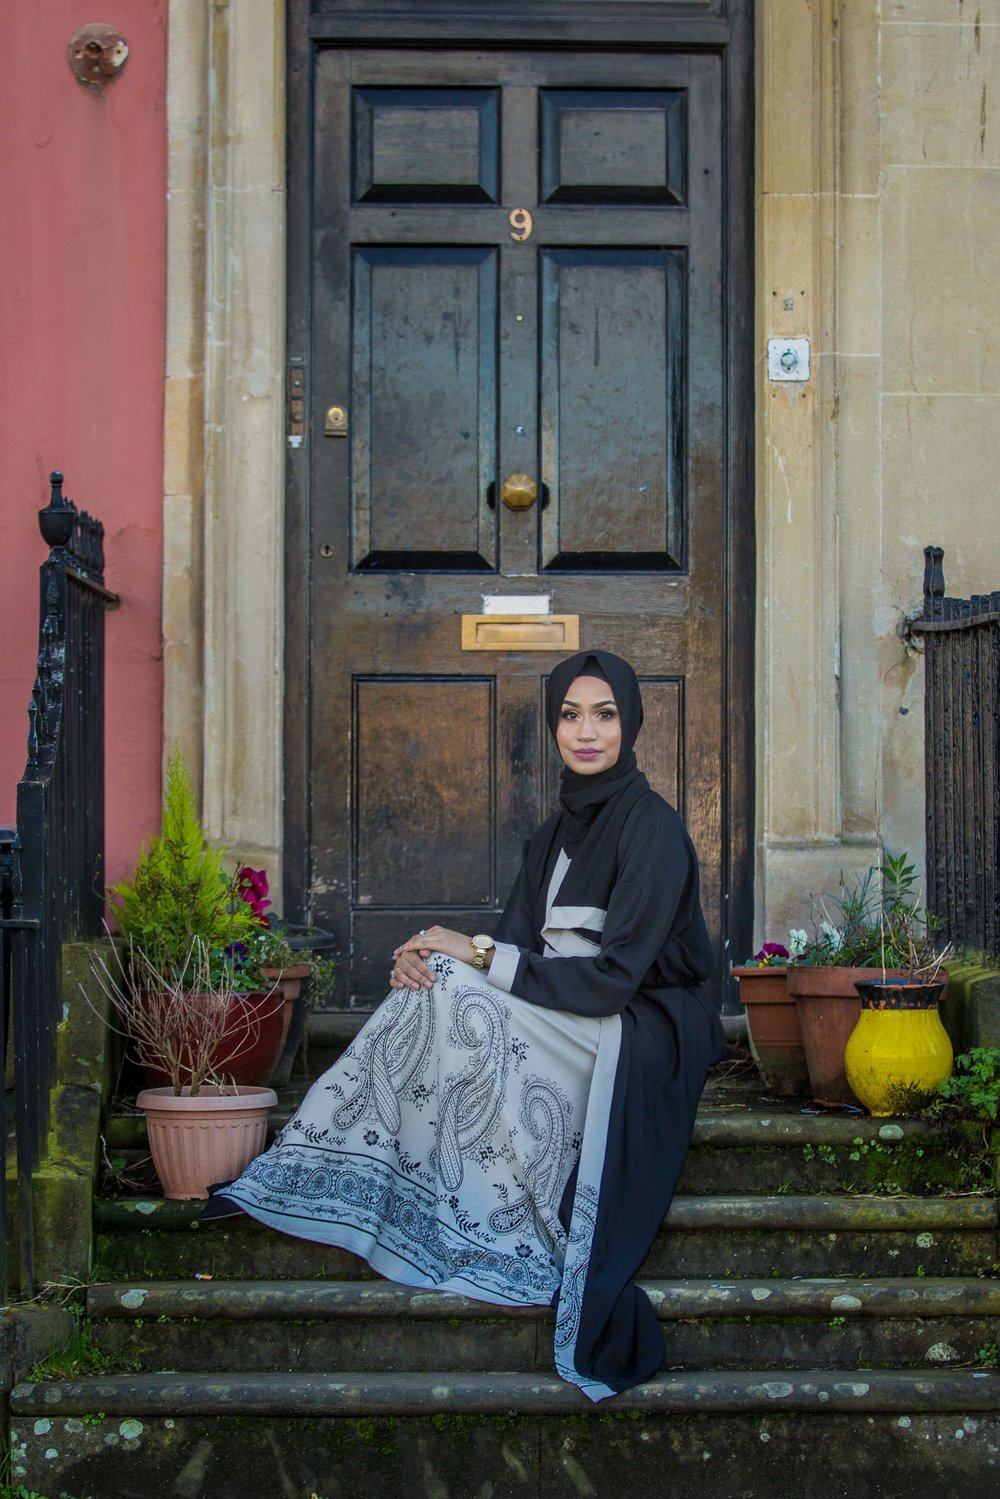 modest-street-aisha-rahman-fashion-photography-london-bristol-natalia-smith-photography-abaya-7.jpg